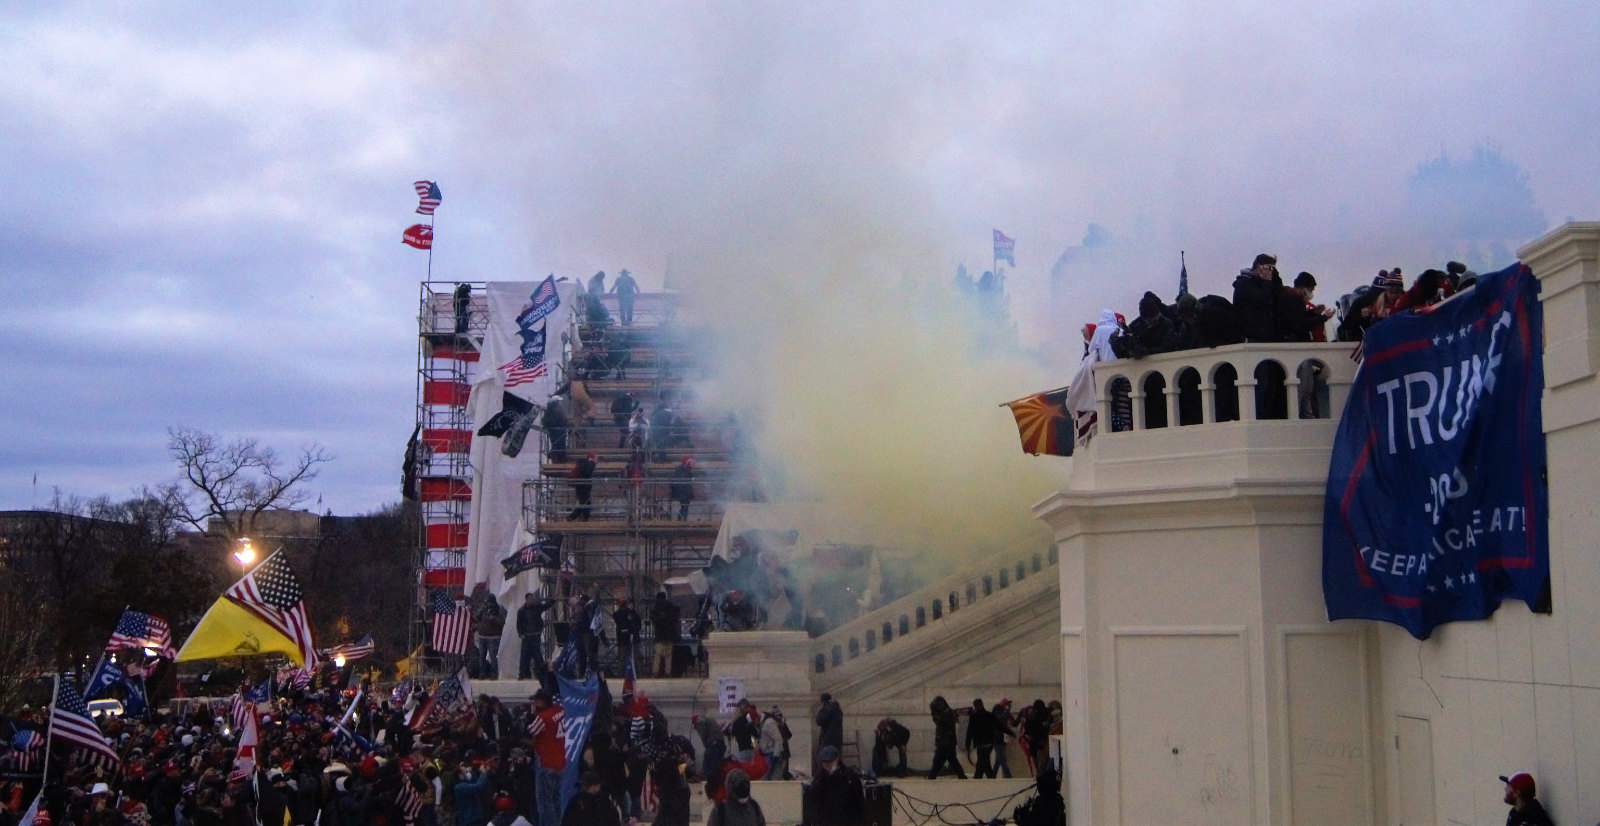 Photo of protestors and tear gas outside United States Capitol